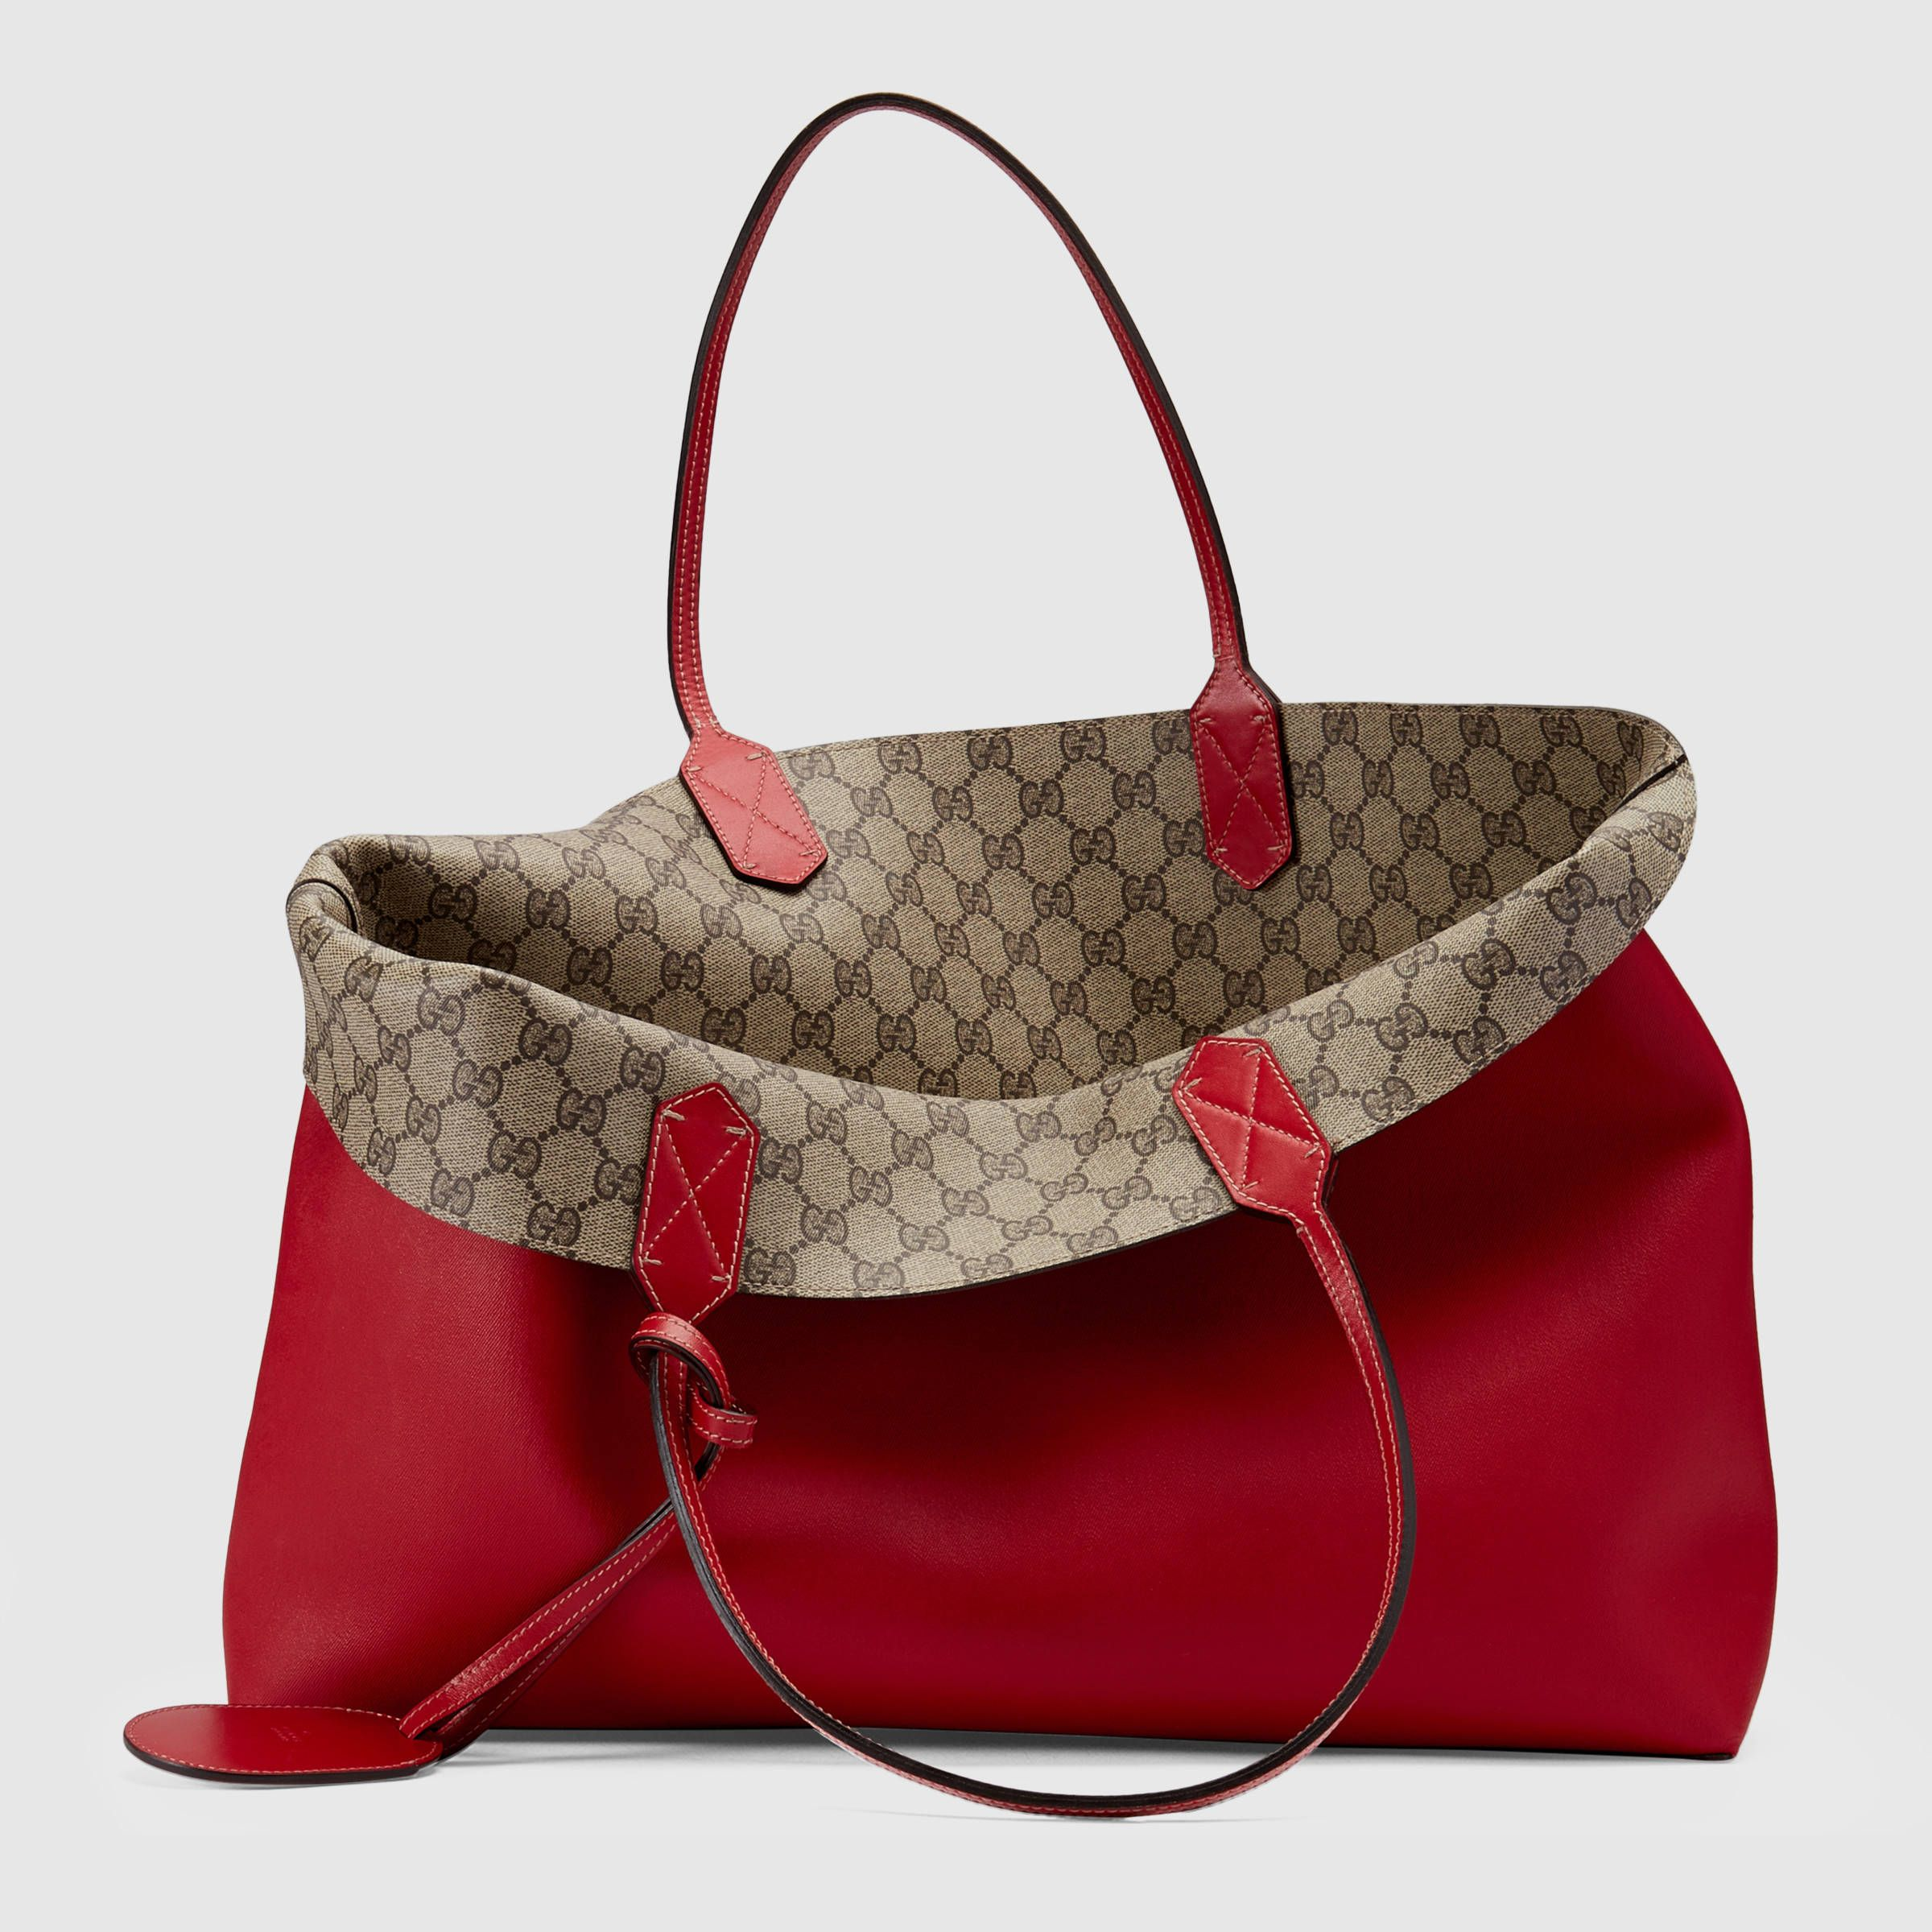 6926c3701b9  gucci  kids  gg  tote  bag  bow  blue  red  detail  style www.jofre.eu